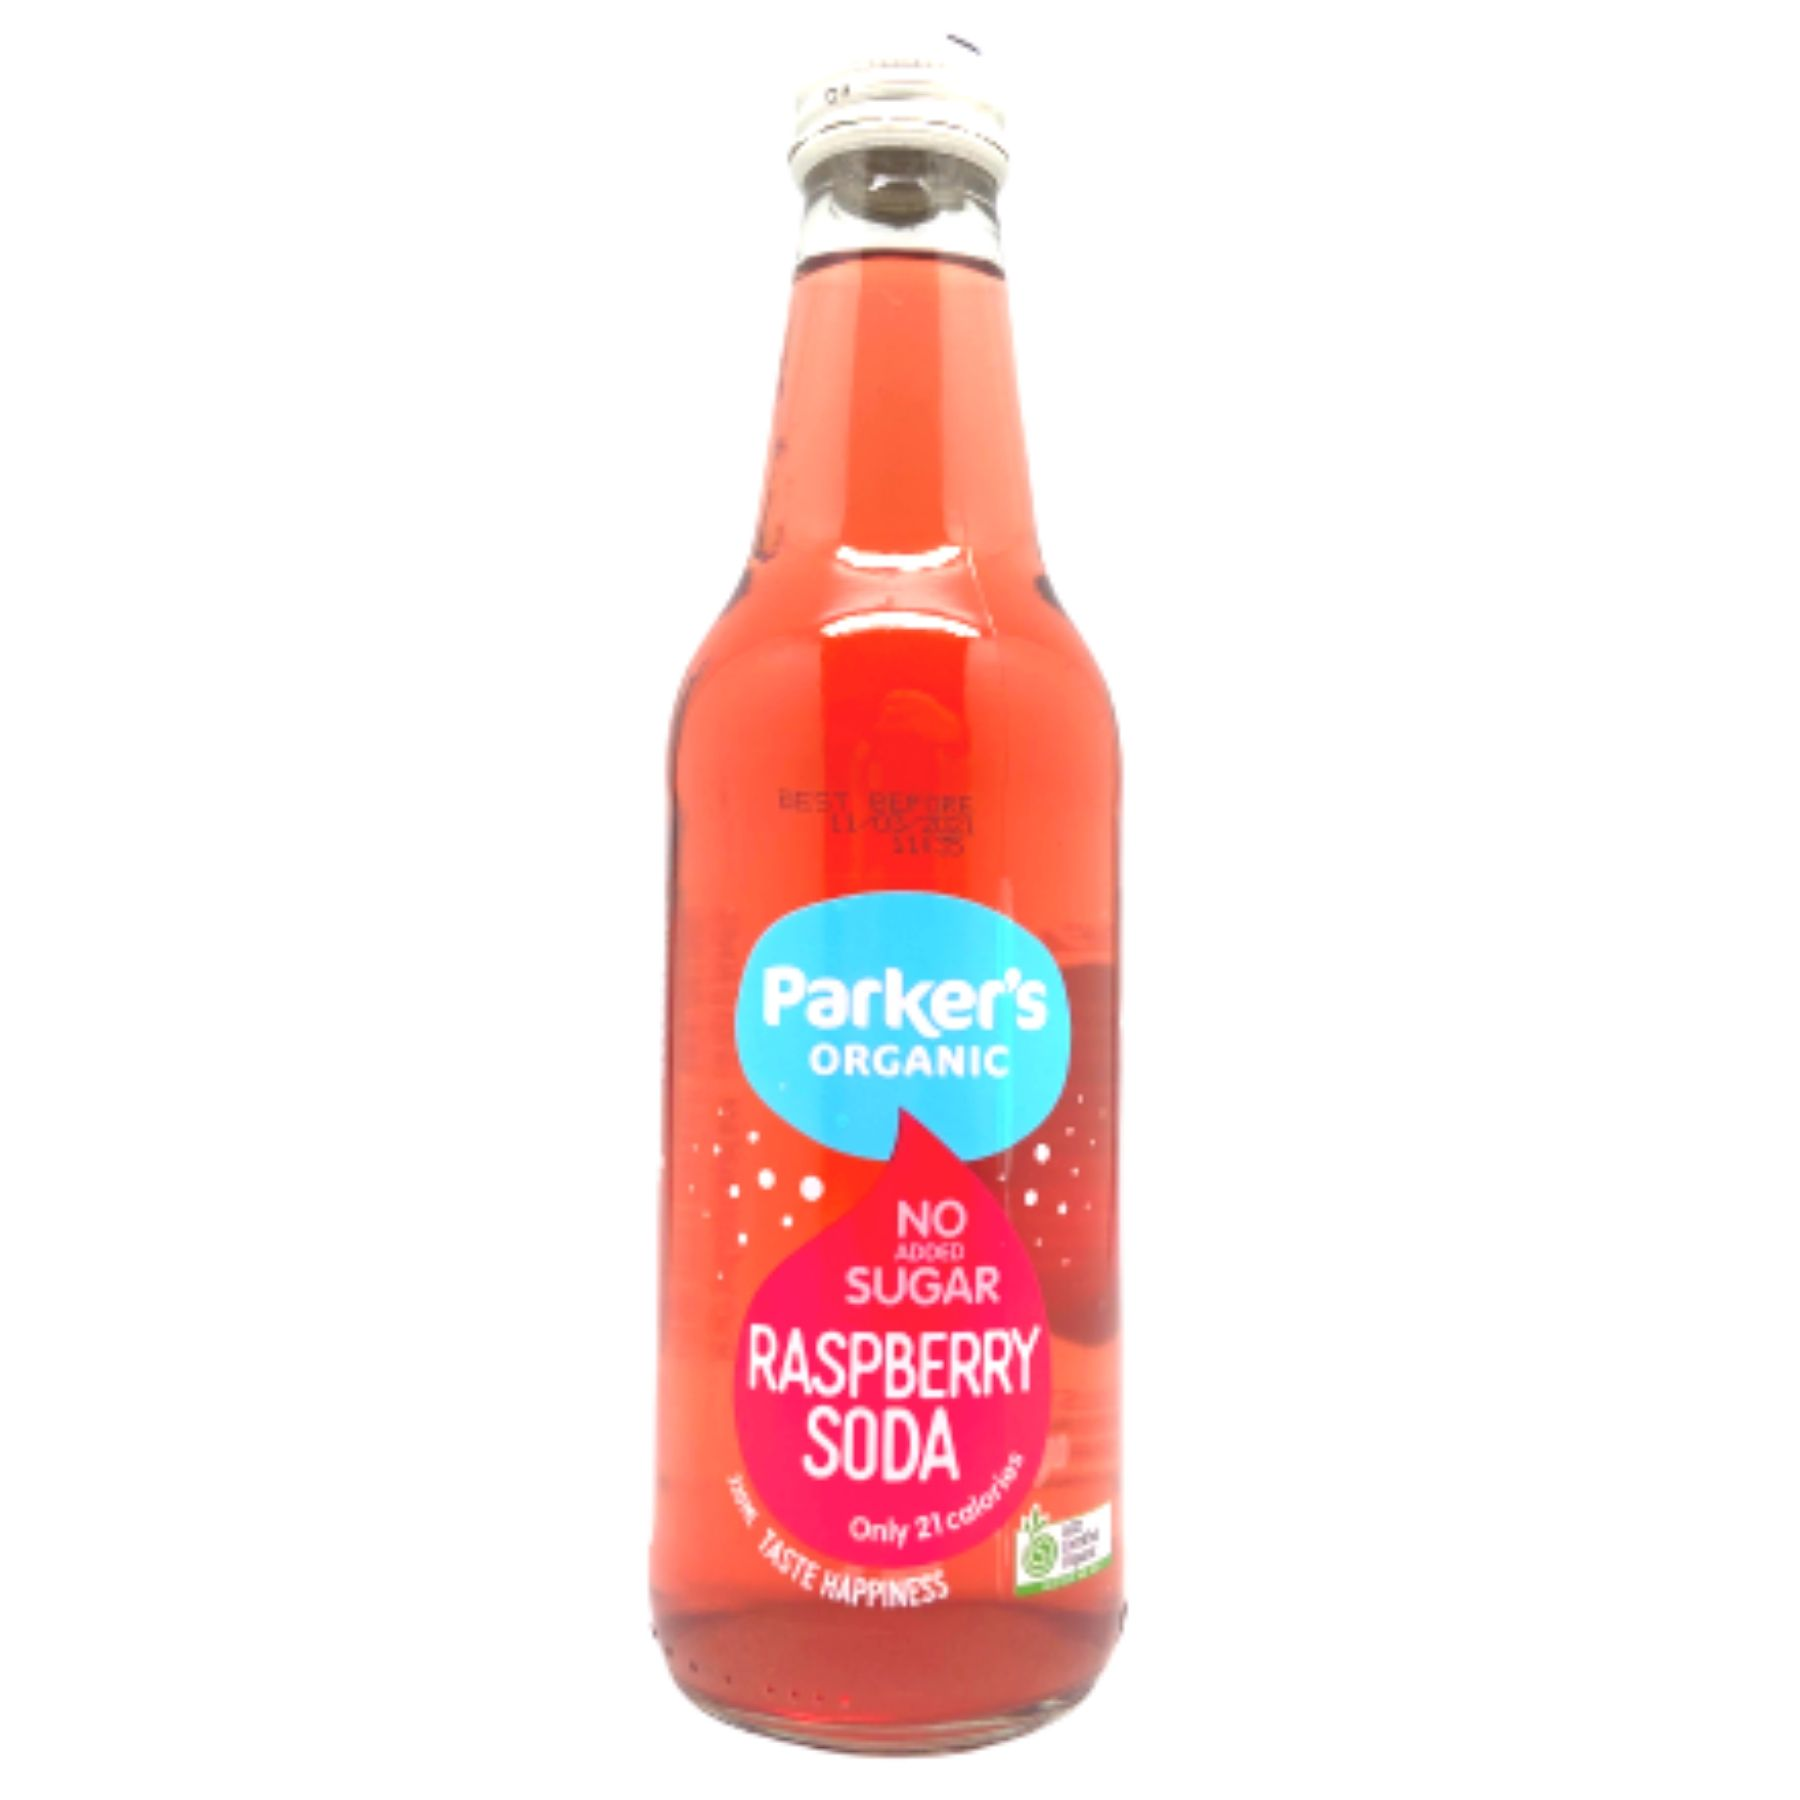 PARKERS Organic Raspberry Soda (Sugarless) 330ml